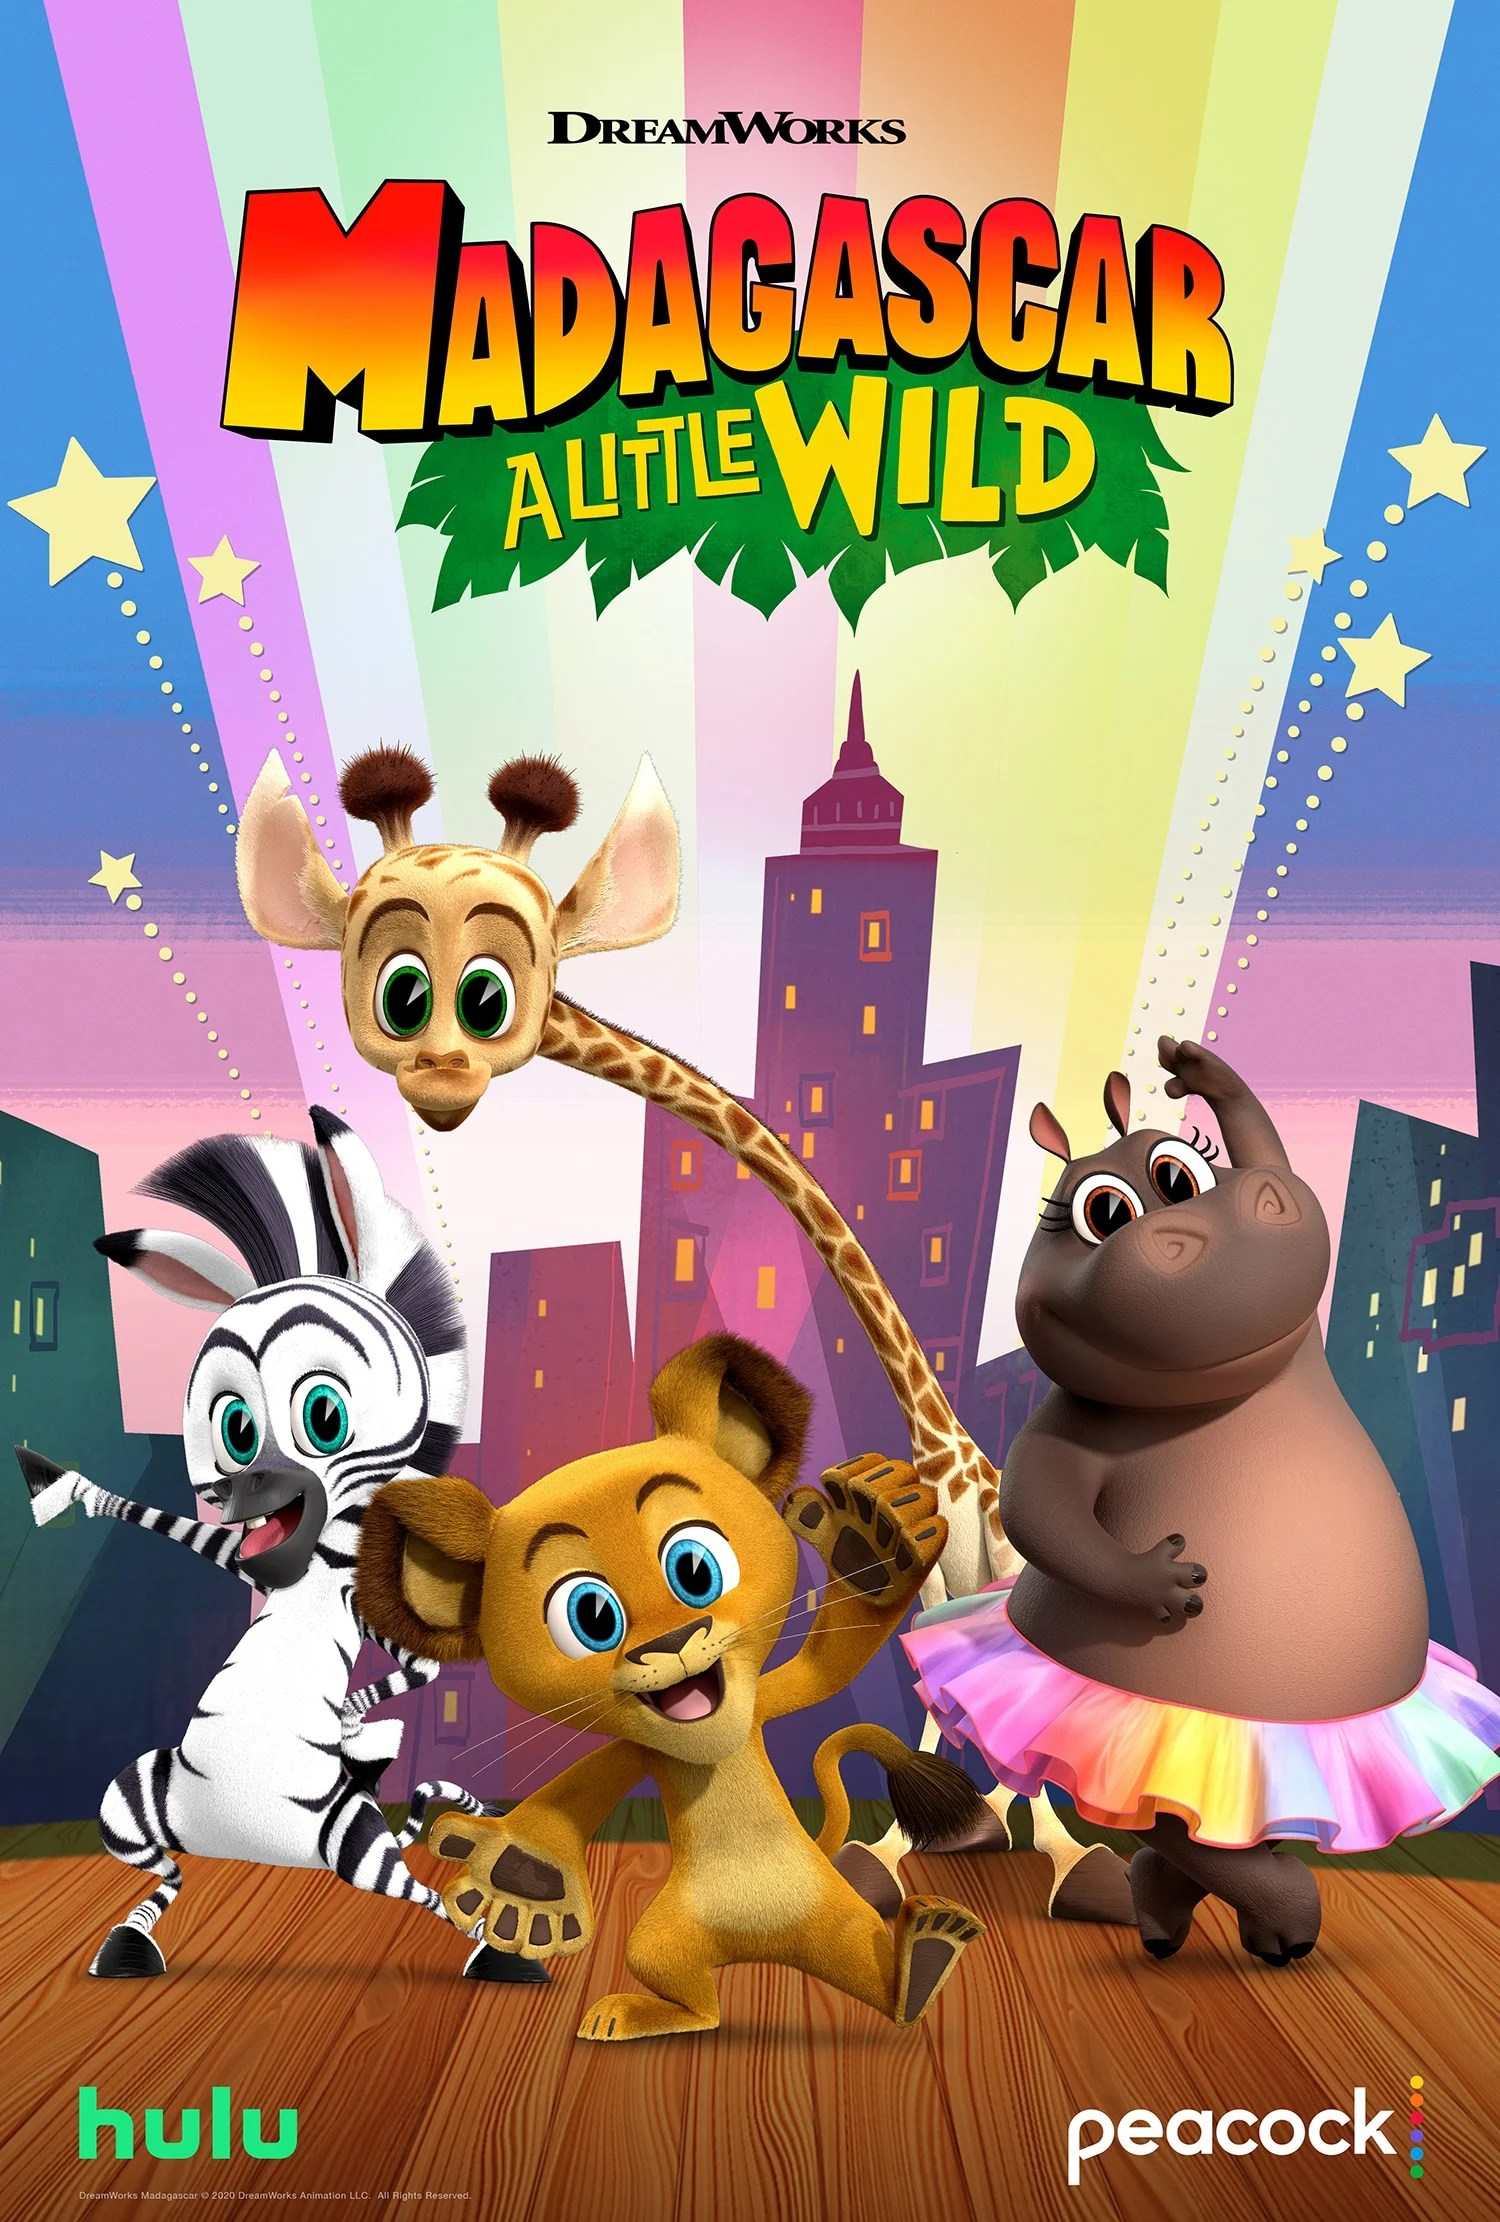 Madagascar A Little Wild. Filled with original music and dance-worthy songs, the lovable foursome Alex the Lion, Marty the Zebra, Melman the Giraffe, and Gloria the Hippo steal the show in Madagascar: A Little Wild. Capturing the iconic personalities of the four dynamos,Madagascar: A Little Wildshowcases the team as kids residing in their rescue habitat at the Central Park Zoo.